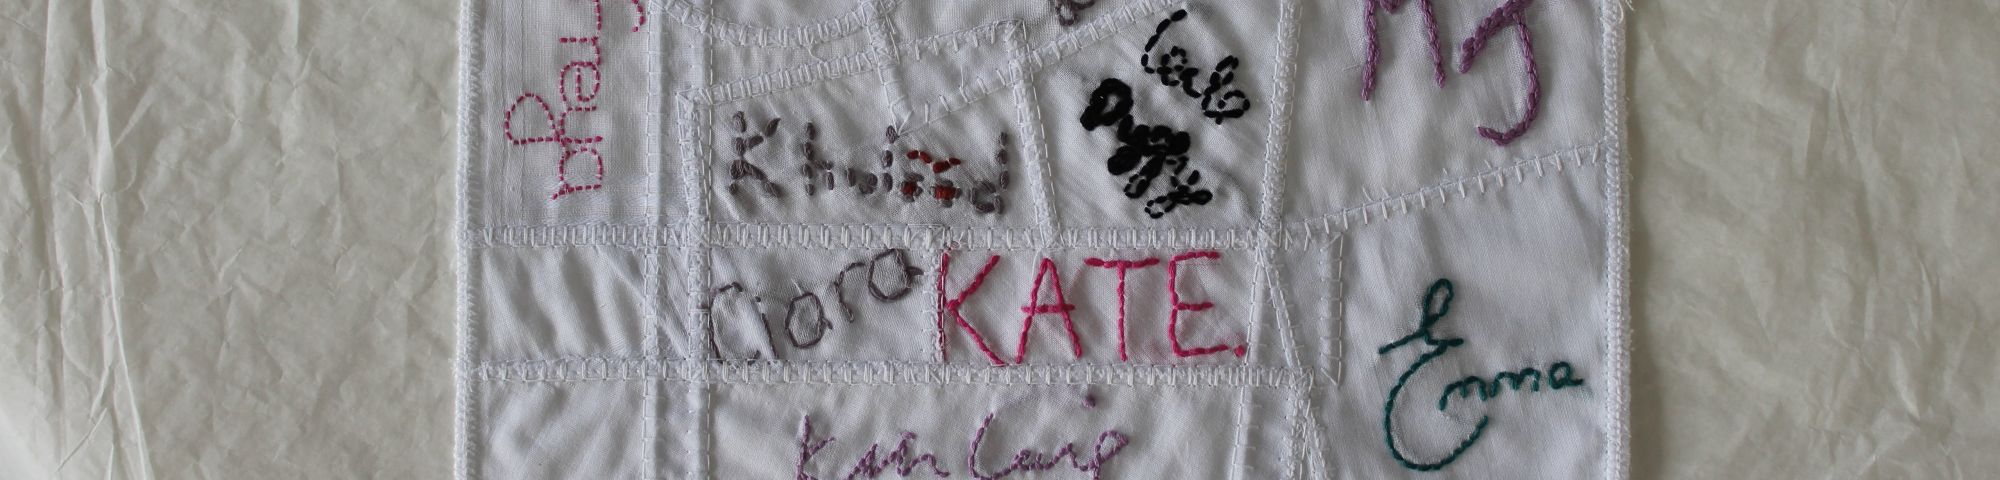 Handkerchief with names embroidered